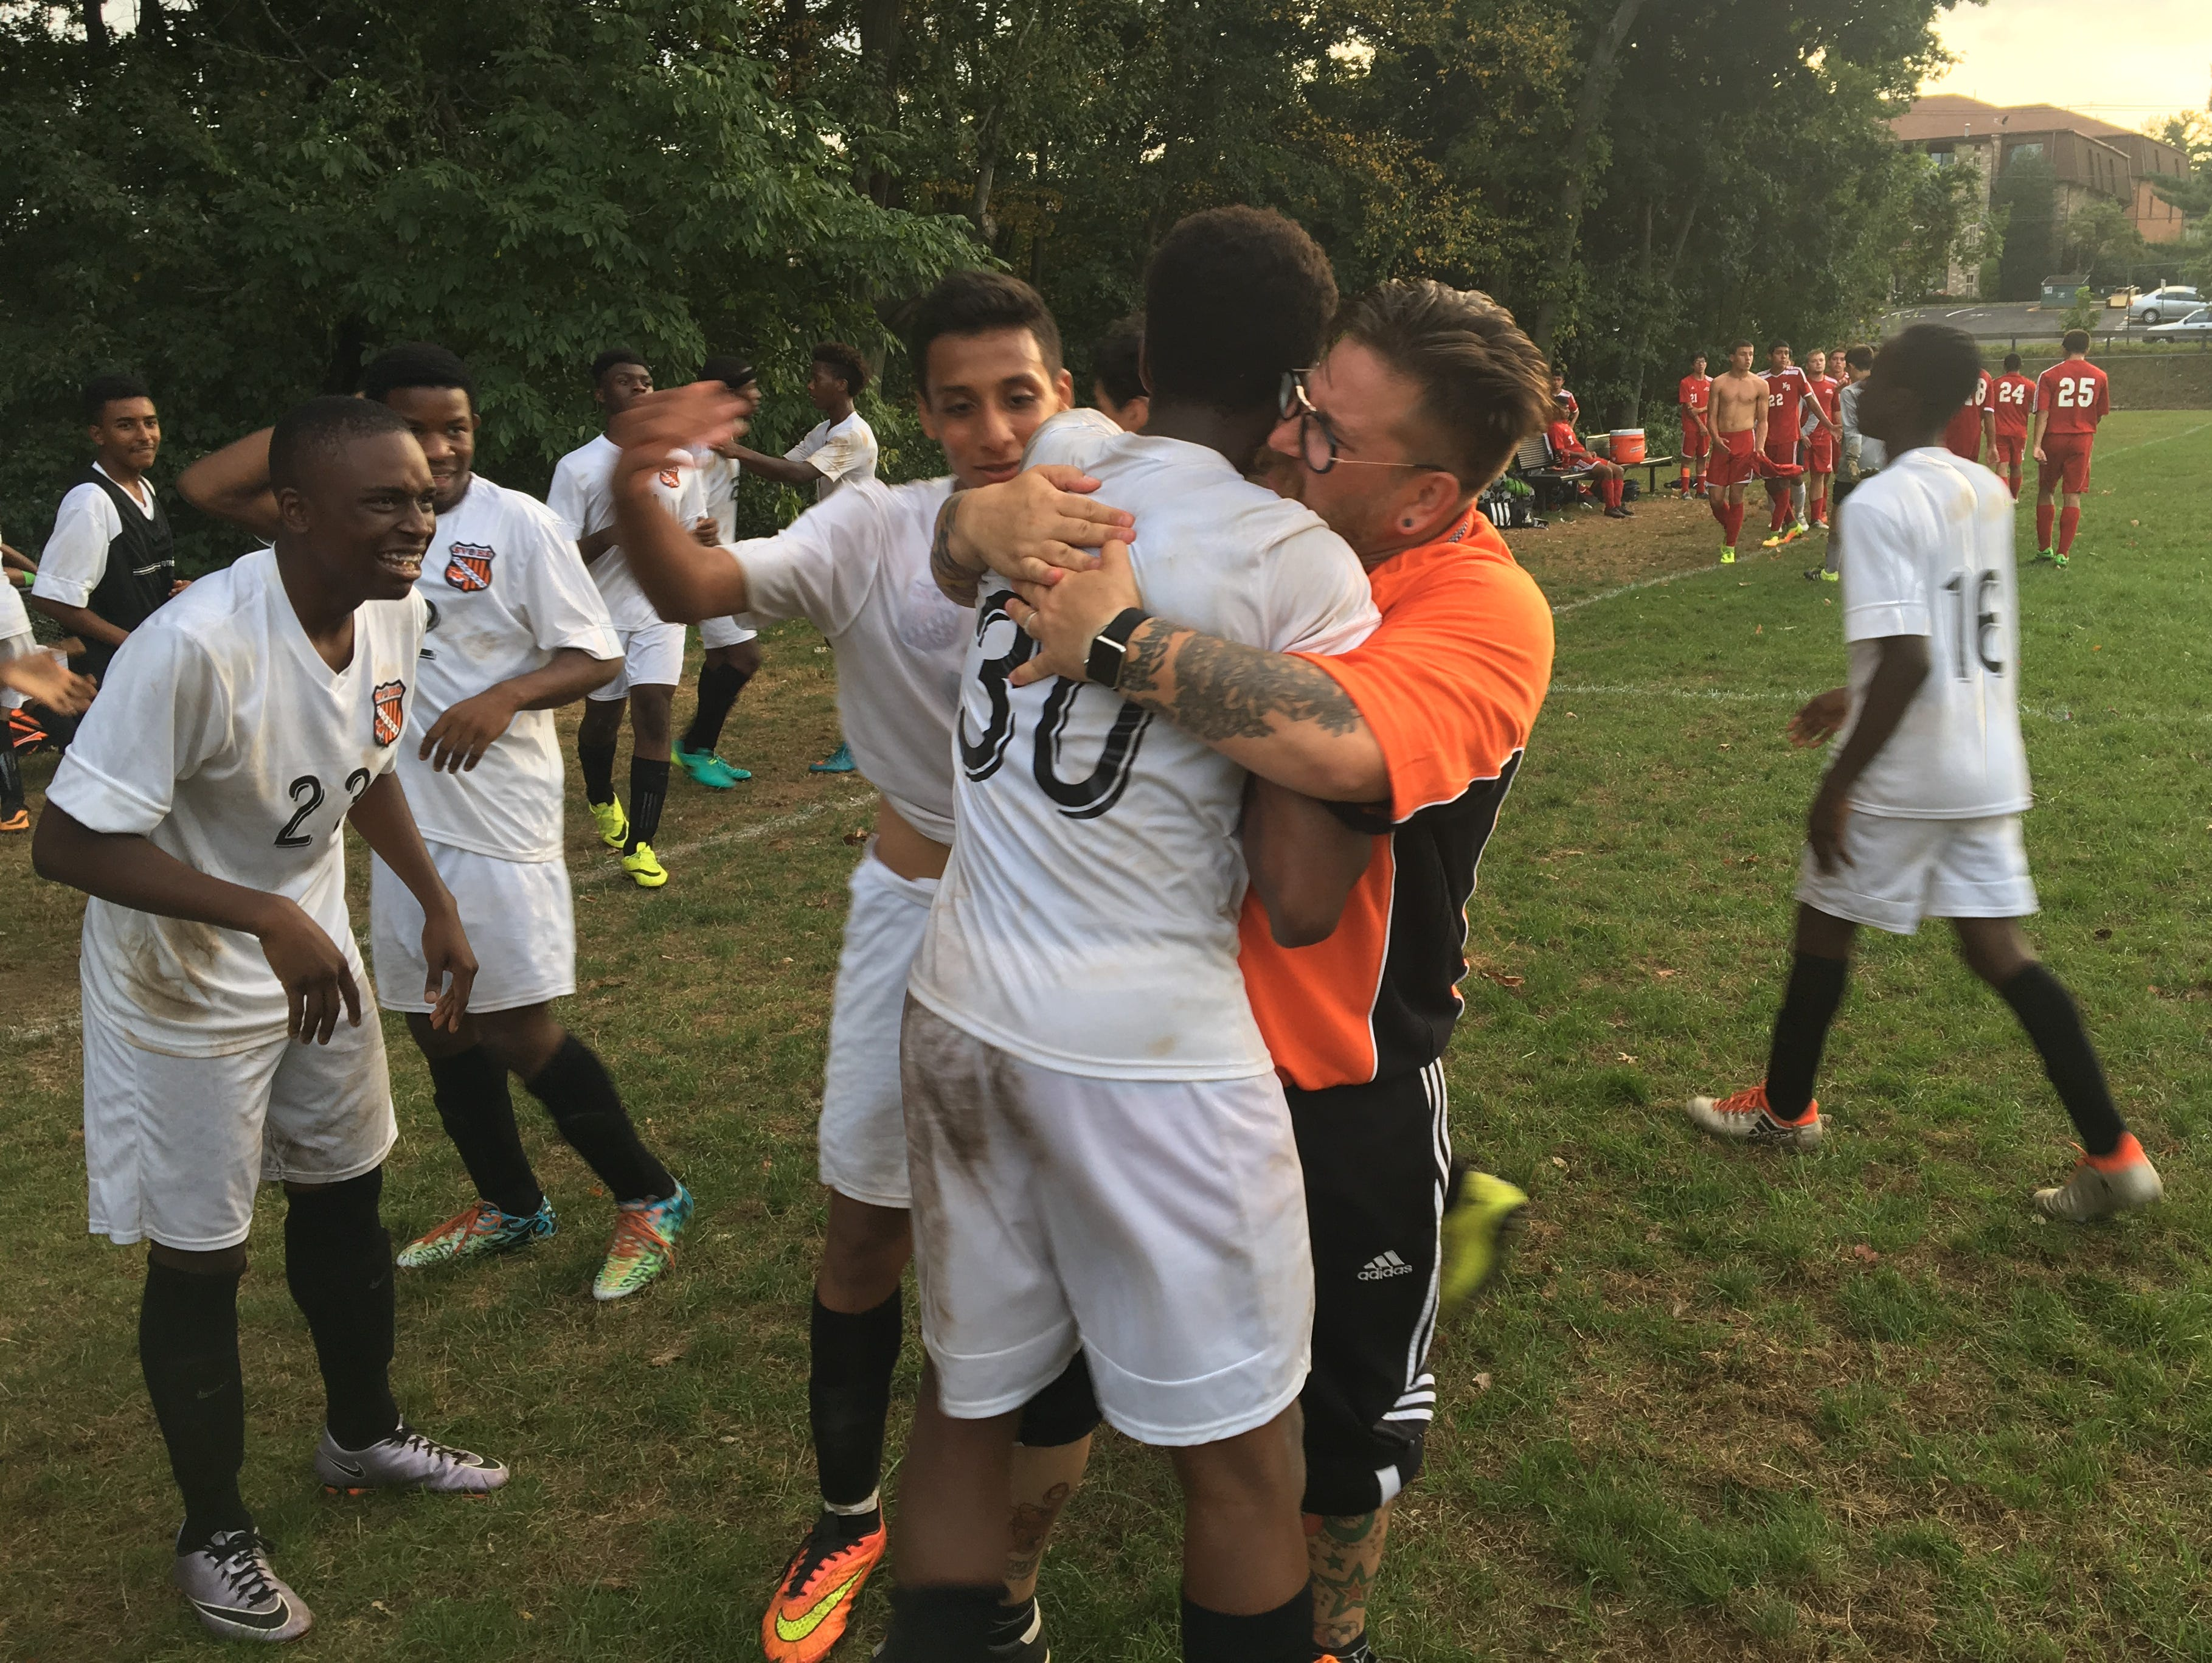 Spring Valley boys soccer head coach Ryan Marcus hugs Alexander Taylor after scoring the game-winning goal in a 1-0 double-overtime win over North Rockland. Sept. 20, 2016.